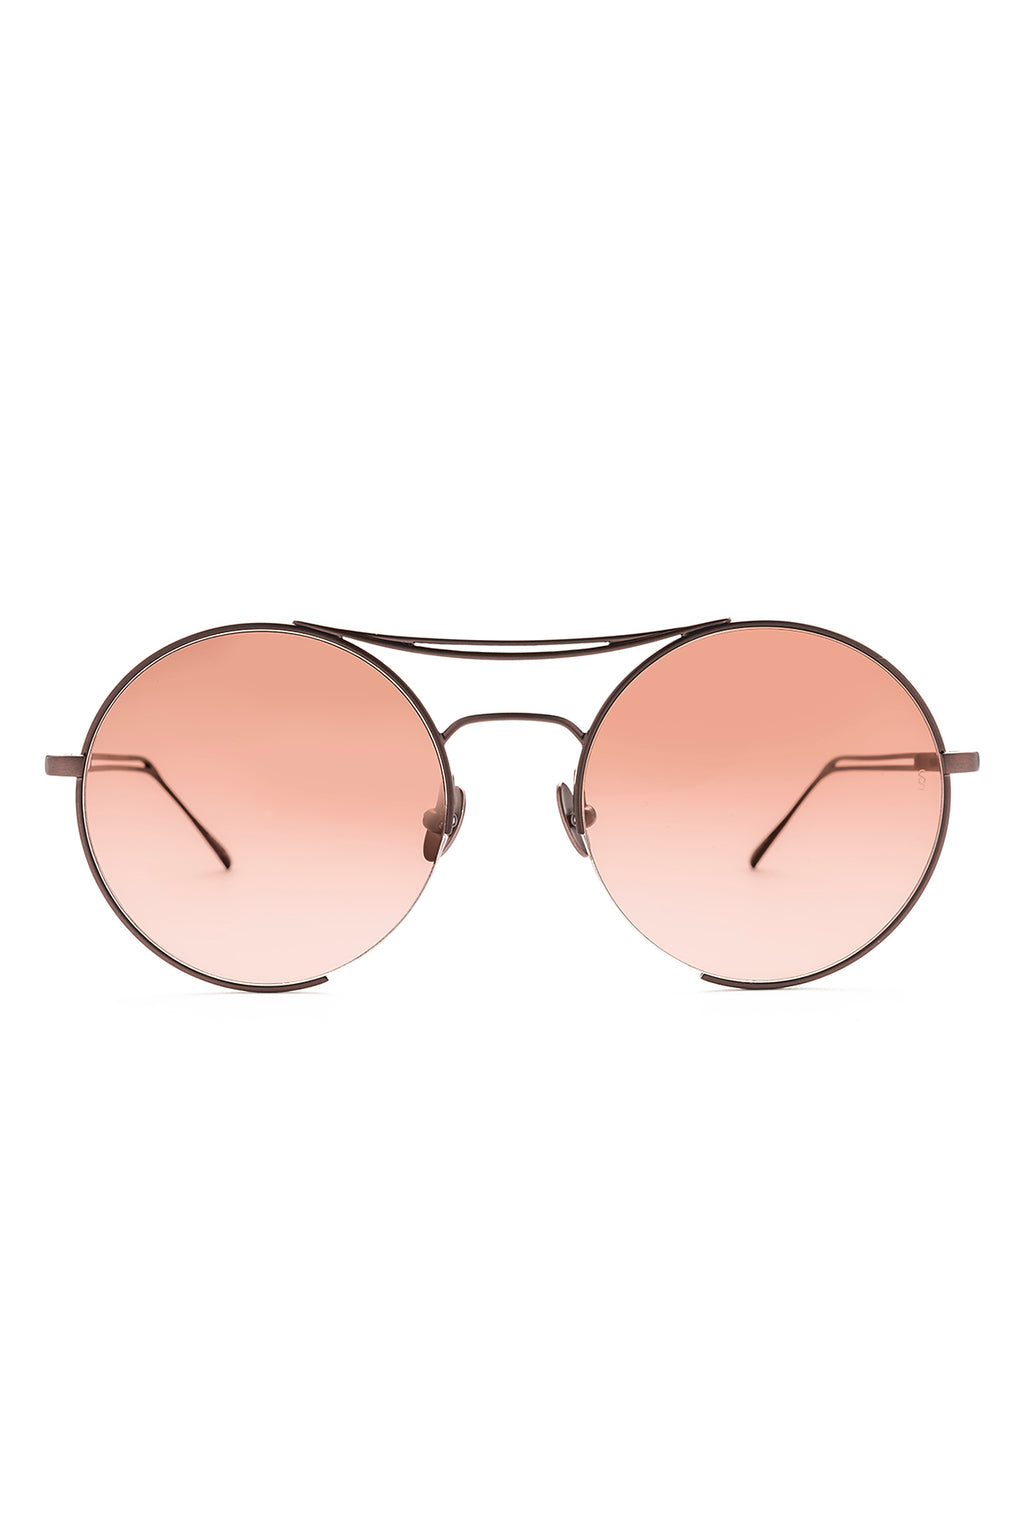 GOLDIE Sunglasses, Brushed Rose Gold